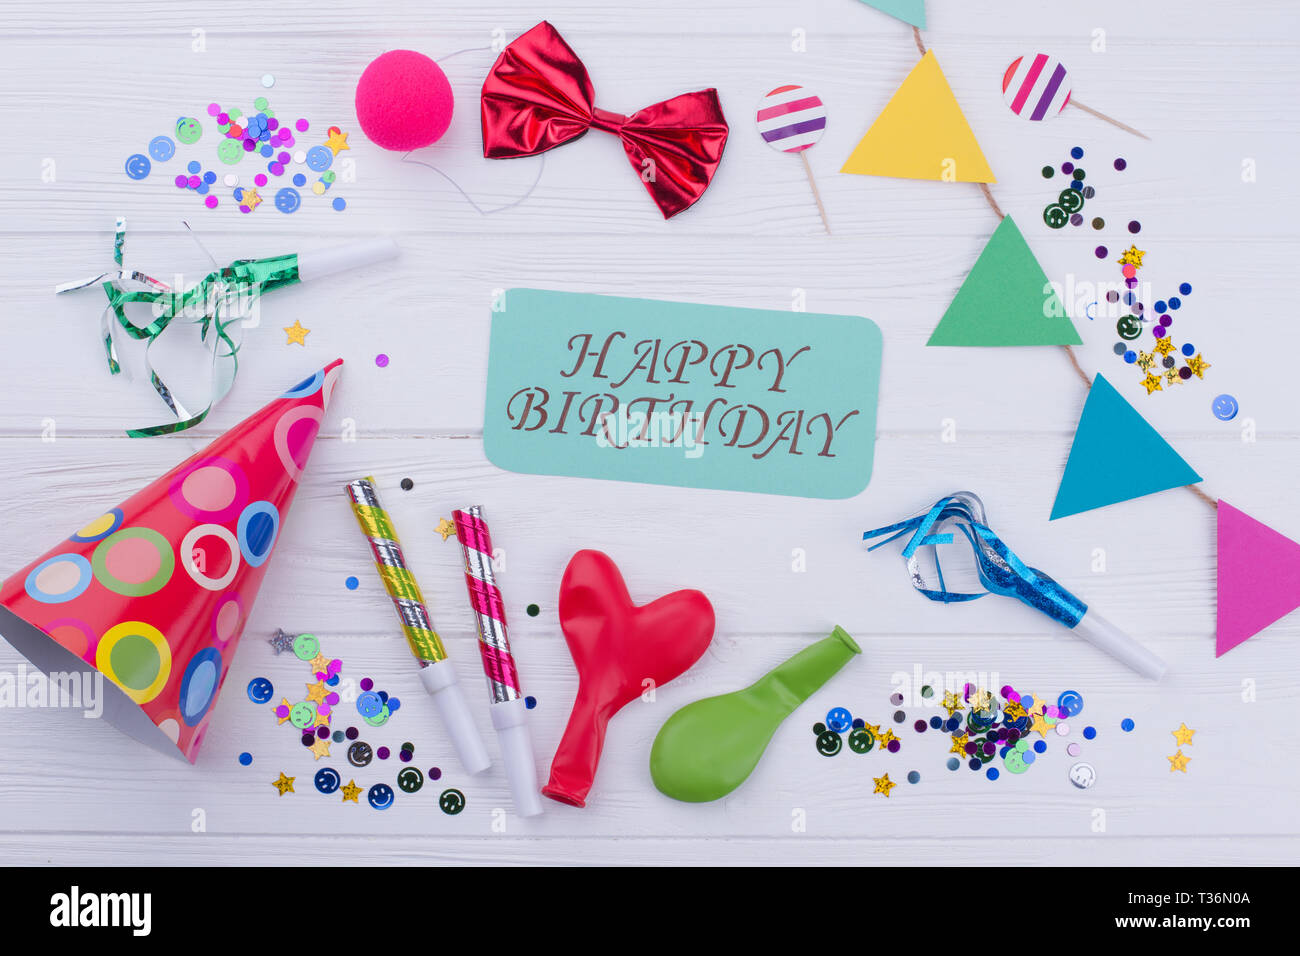 Accessories For Kids Birthday Party On A Wooden Background